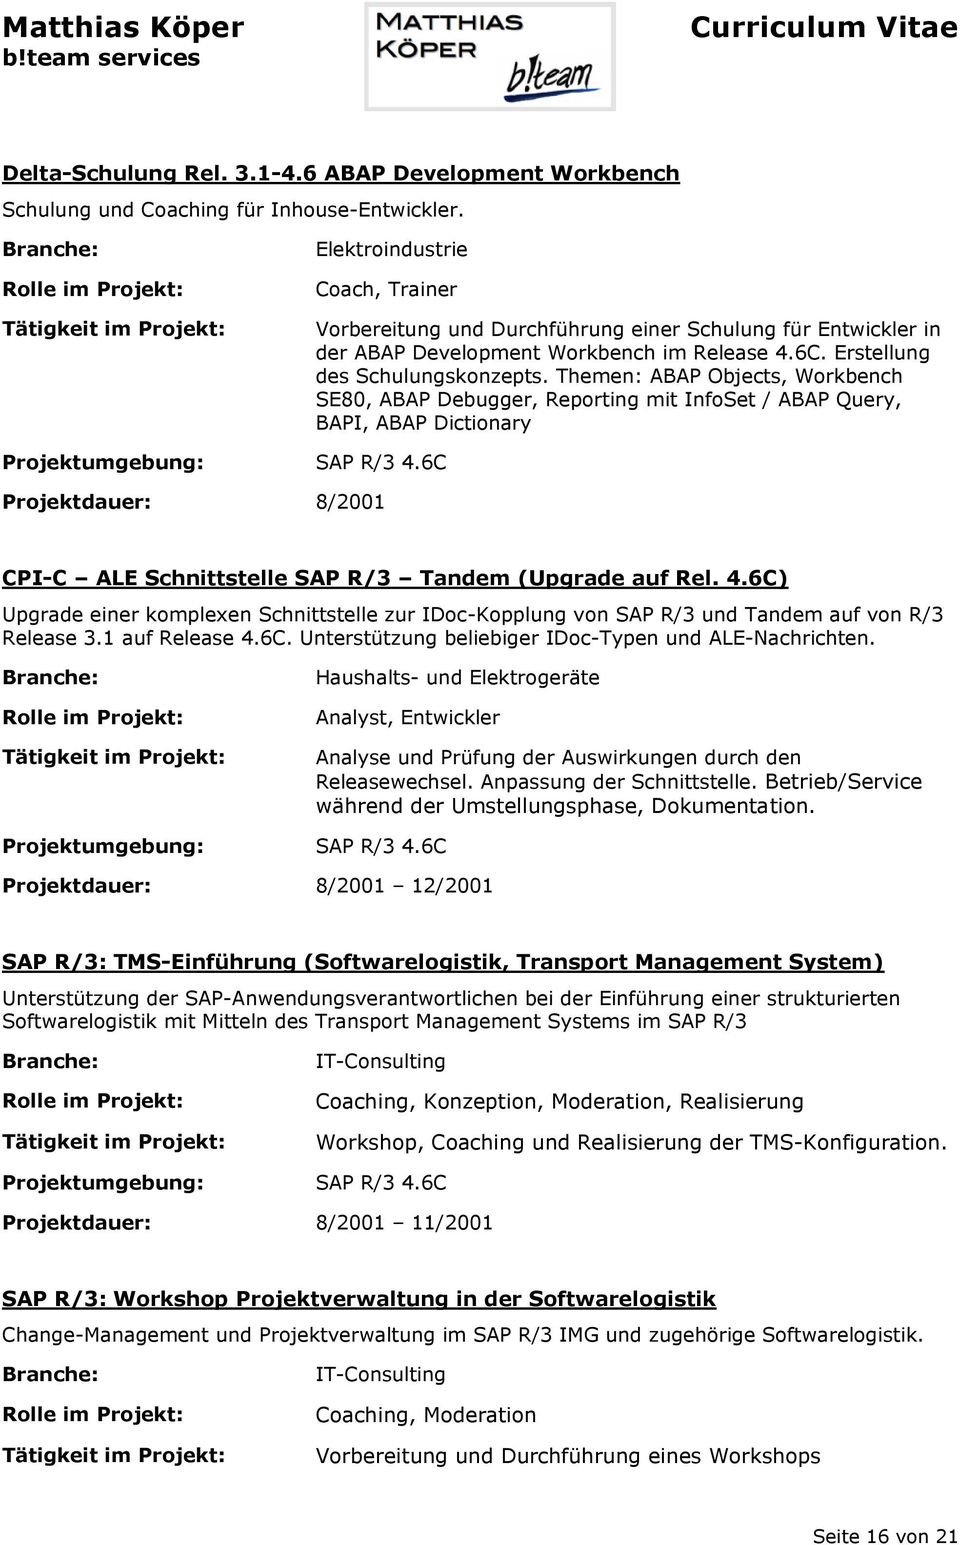 Themen: ABAP Objects, Workbench SE80, ABAP Debugger, Reporting mit InfoSet / ABAP Query, BAPI, ABAP Dictionary SAP R/3 4.